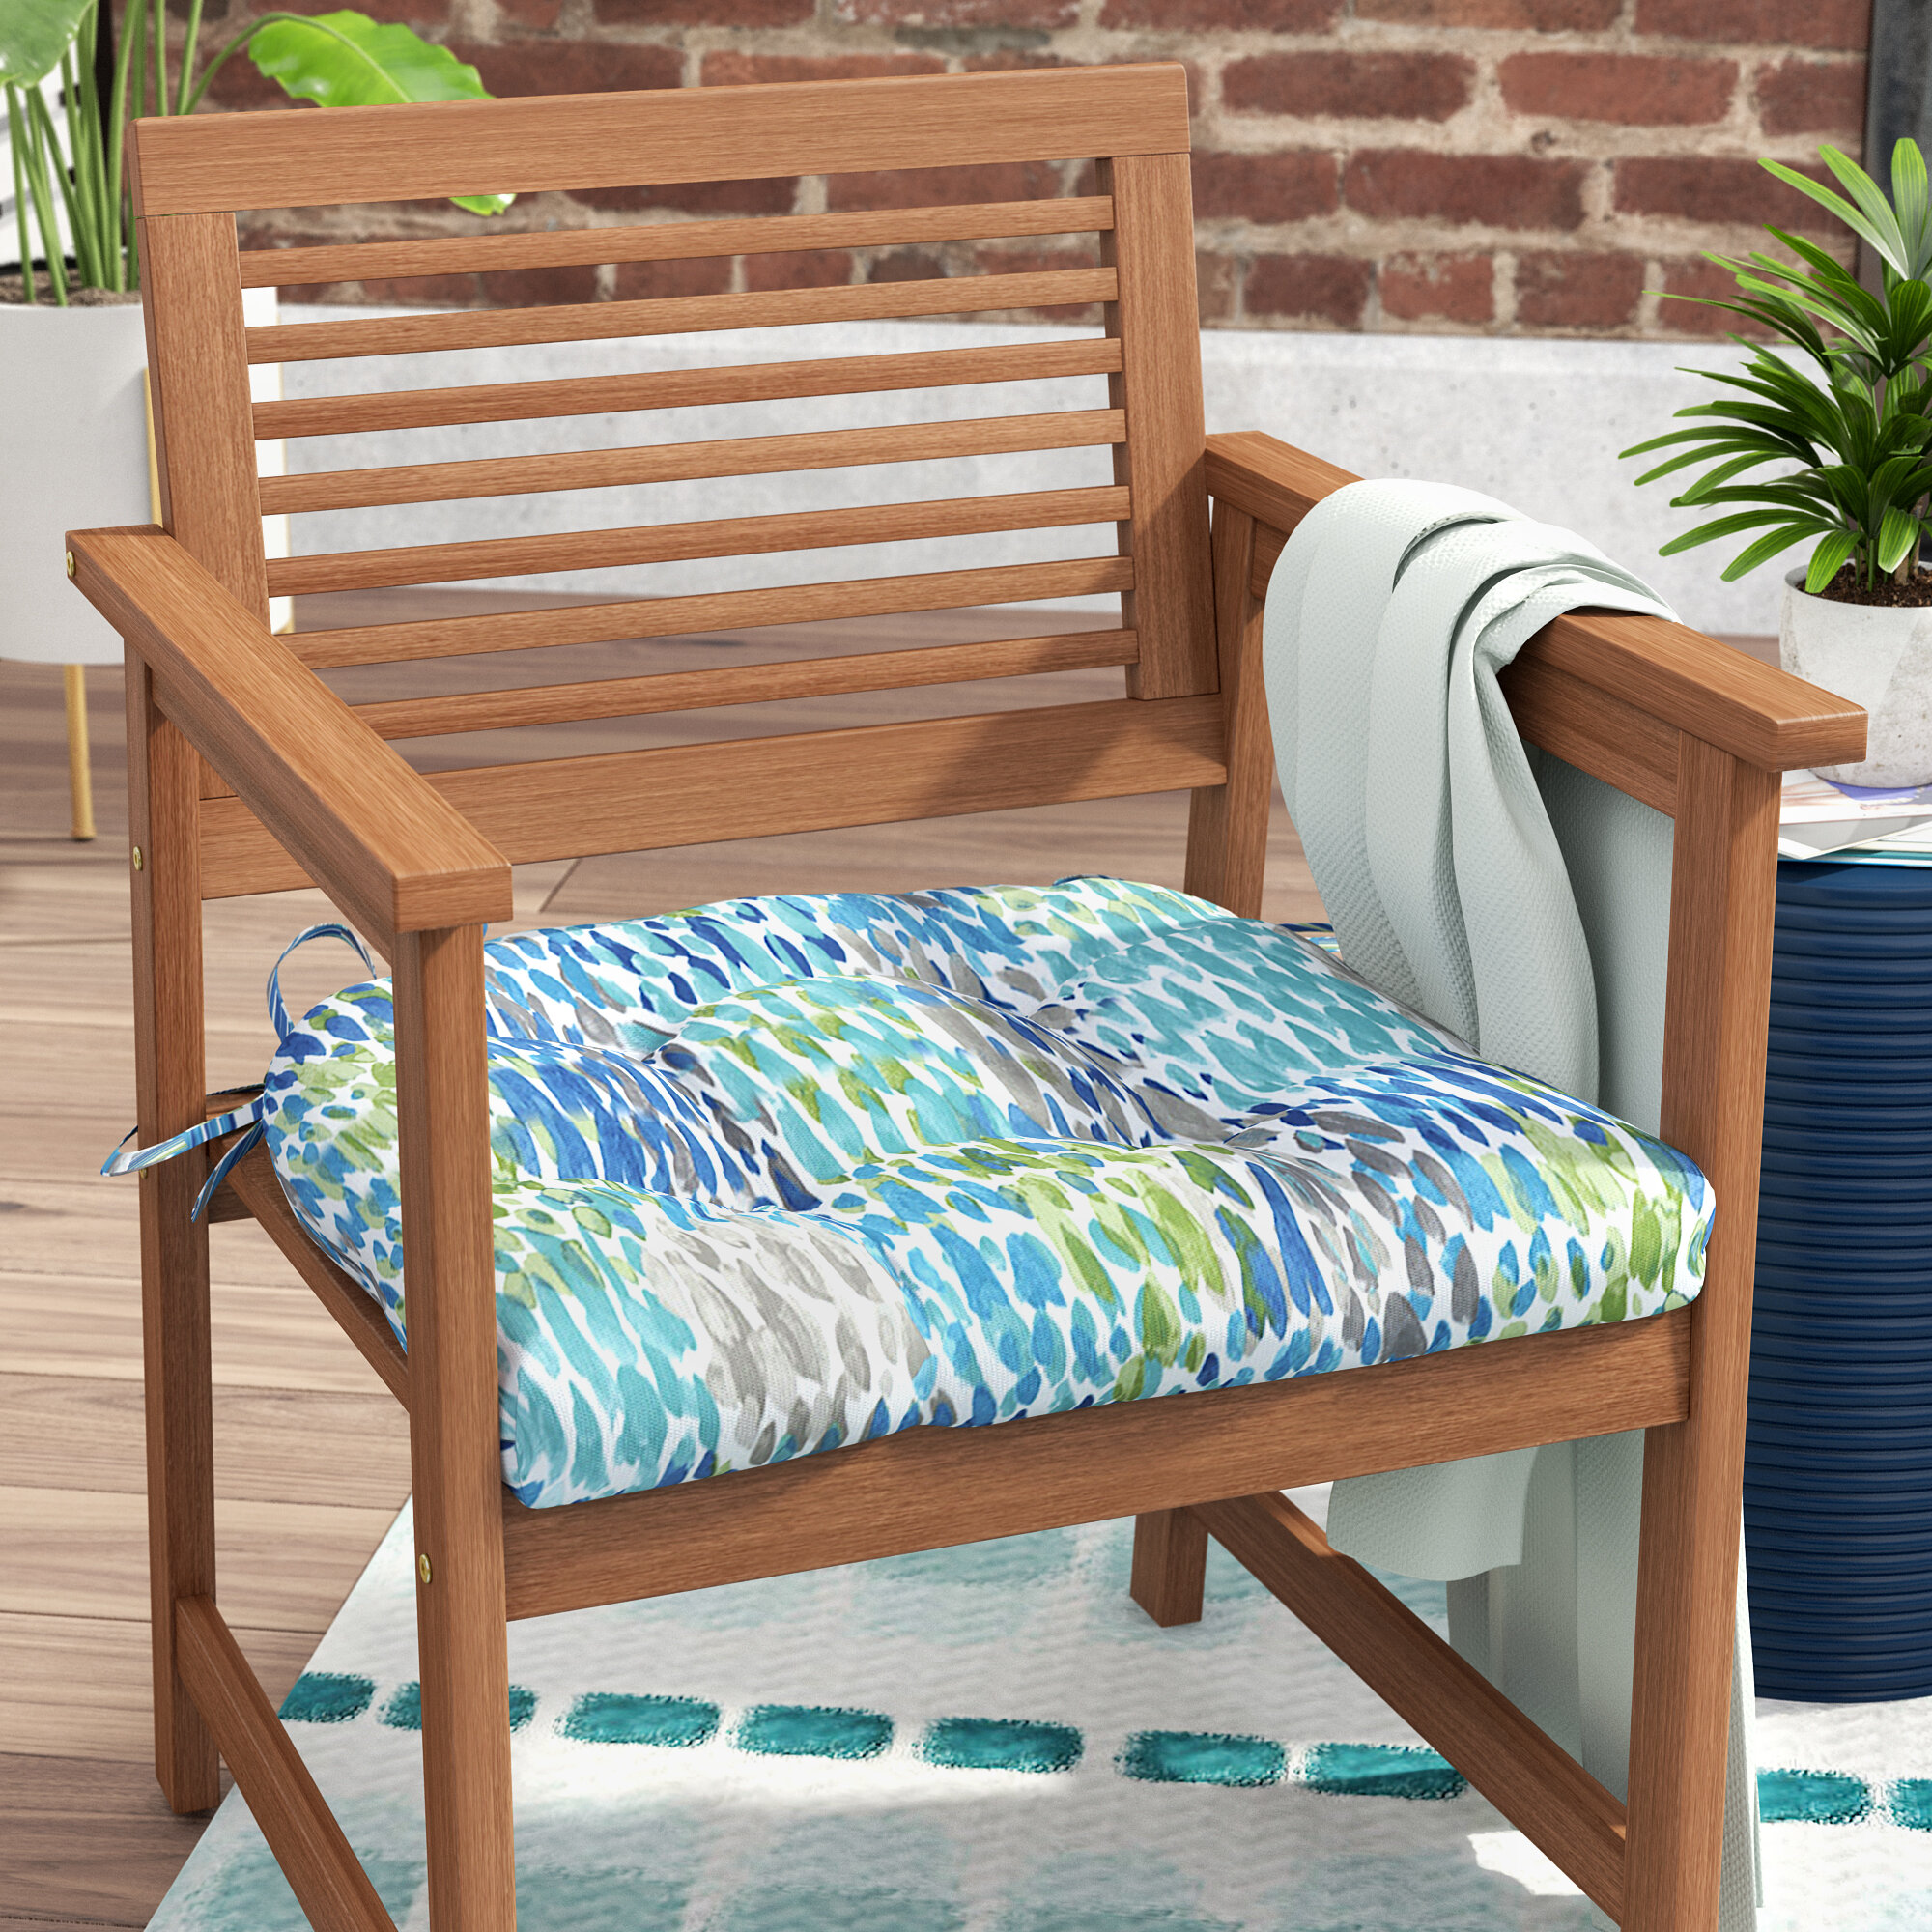 Phenomenal Make It Rain Cerulean Reversible Indoor Outdoor Dining Chair Cushion Machost Co Dining Chair Design Ideas Machostcouk